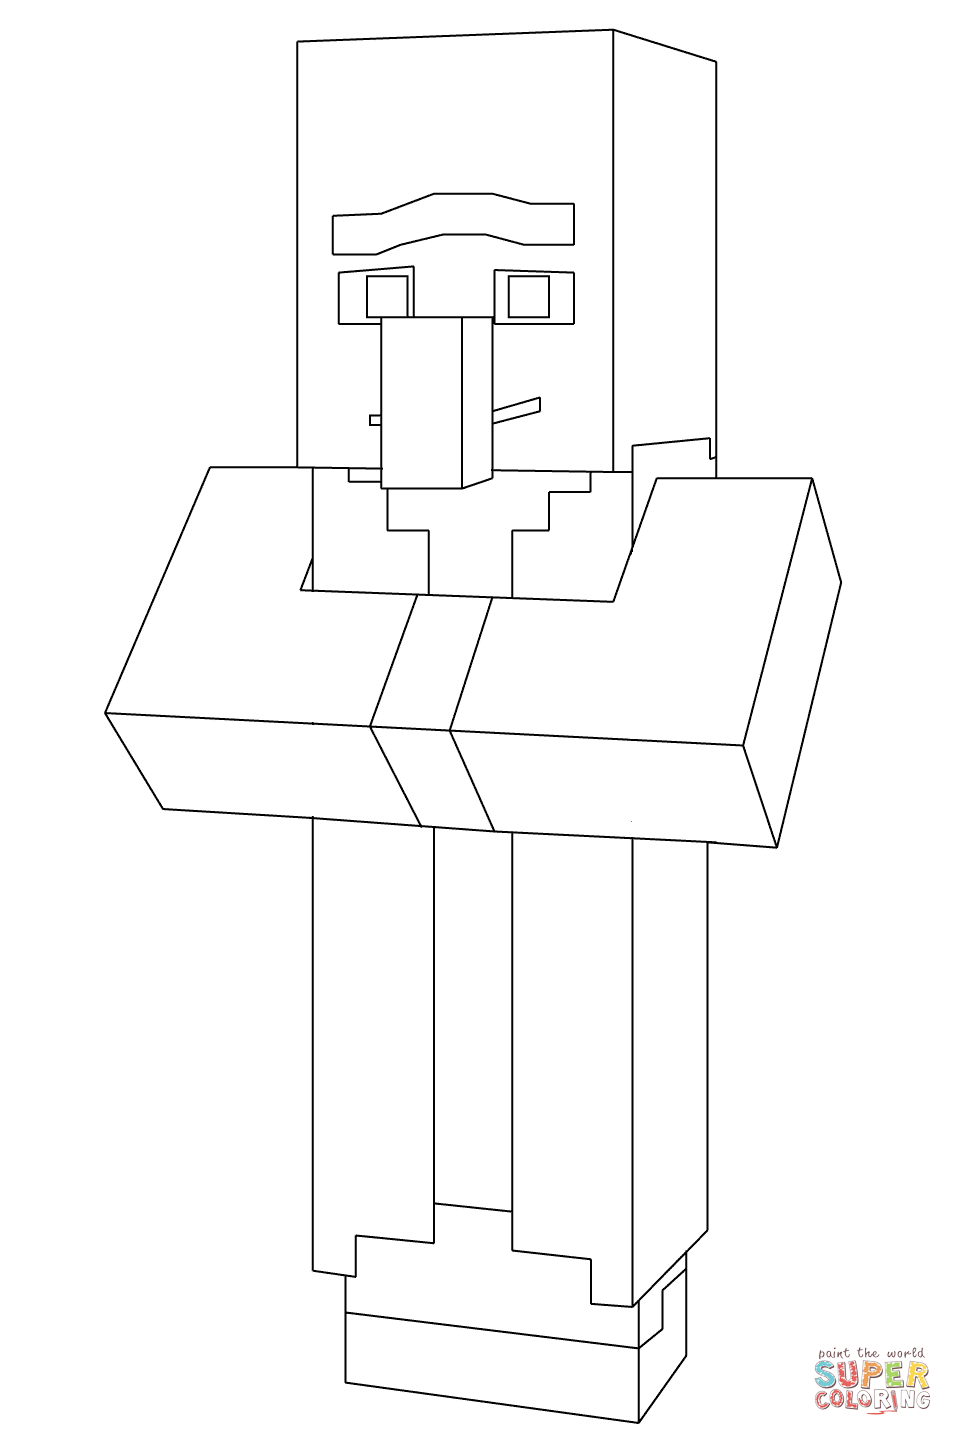 Chopkins Kleurplaat Minecraft Villager From Minecraft Coloring Page Free